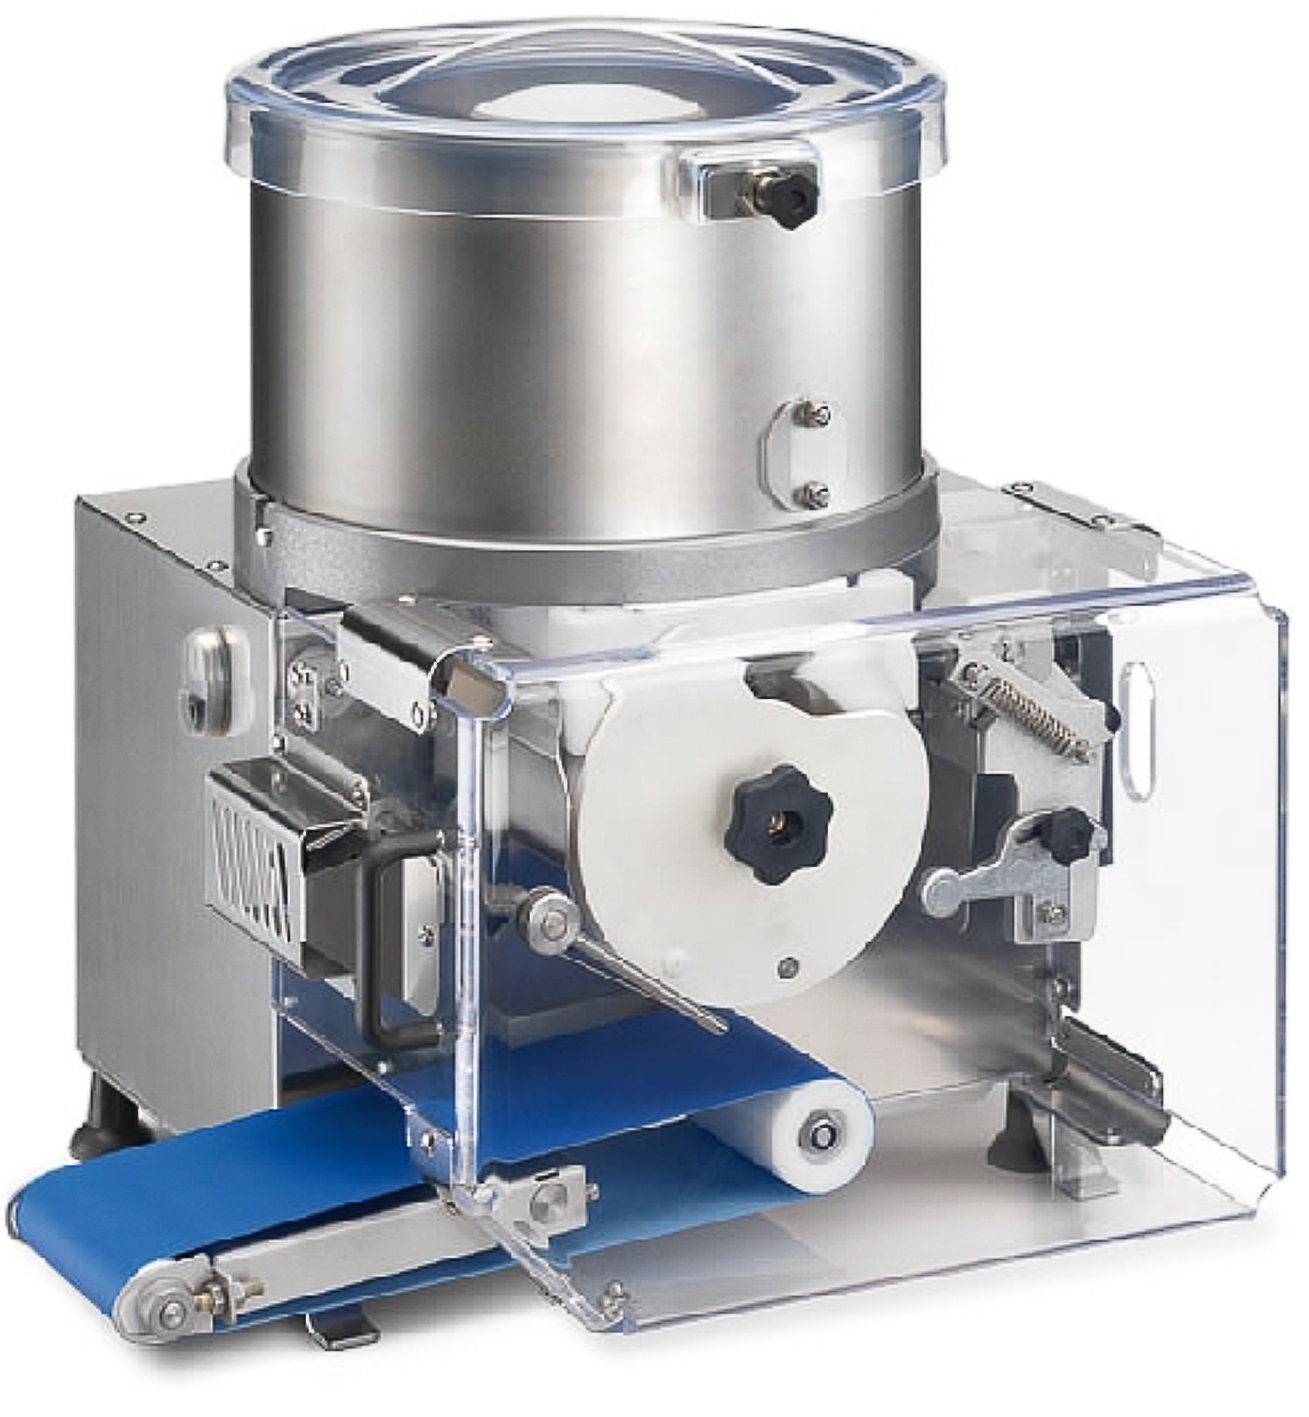 CE653 Patty Maker